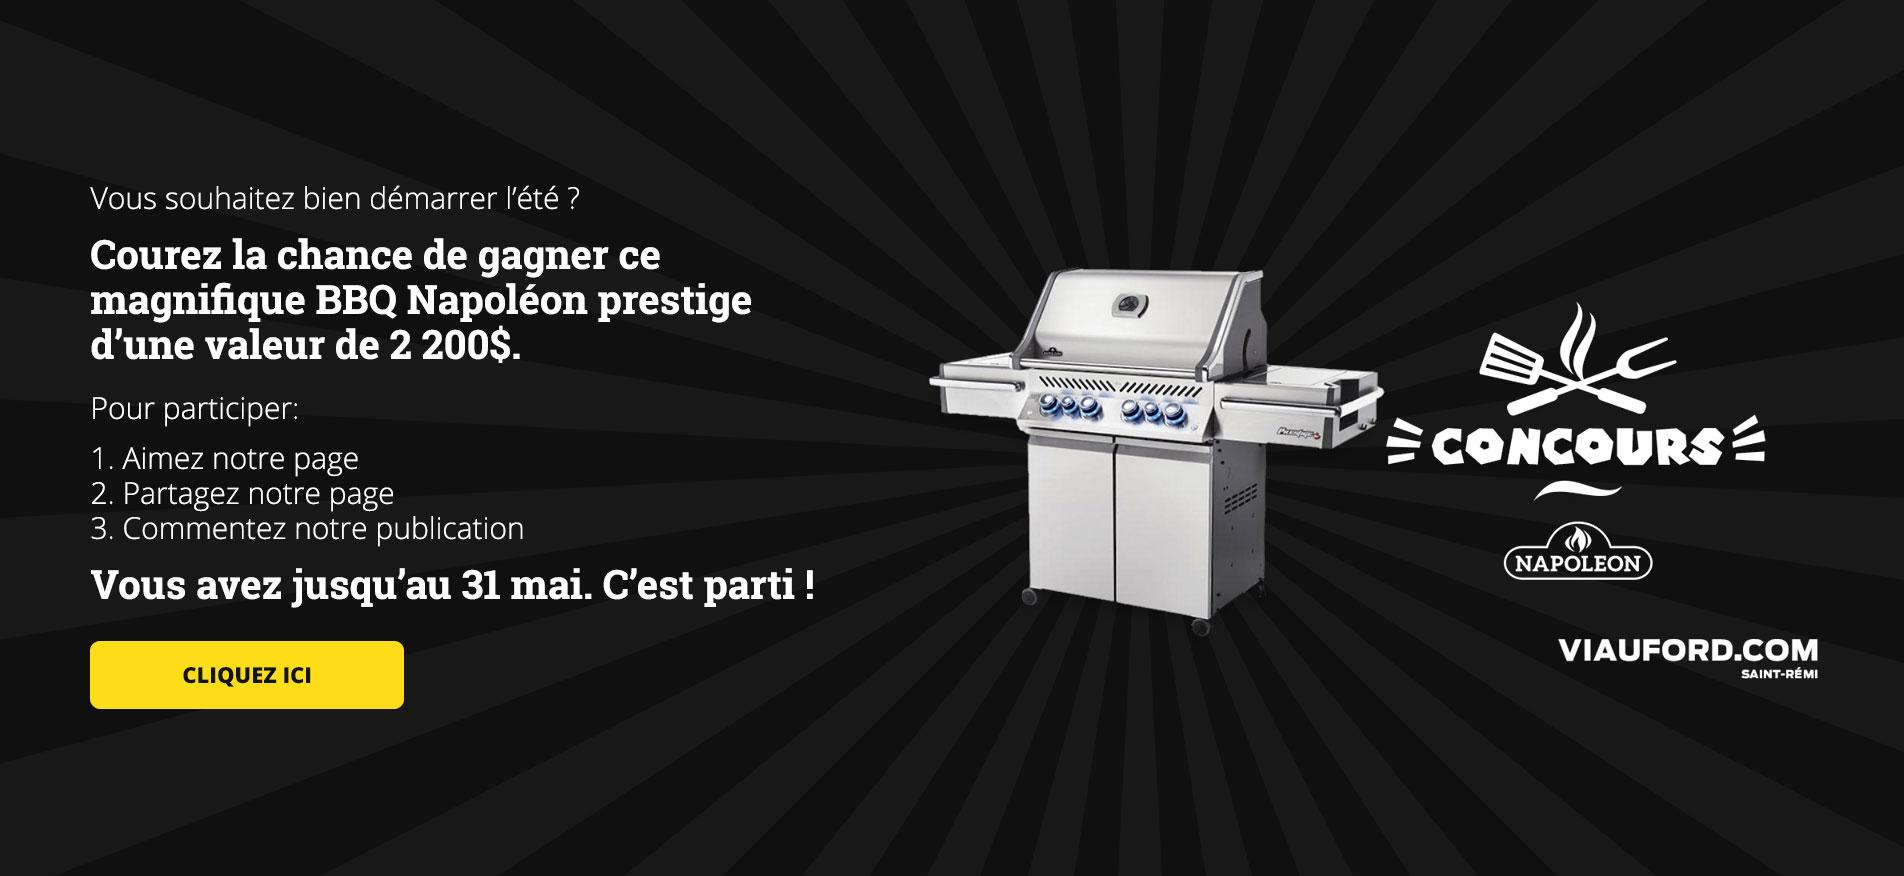 Barbecue Viau Ford Concours